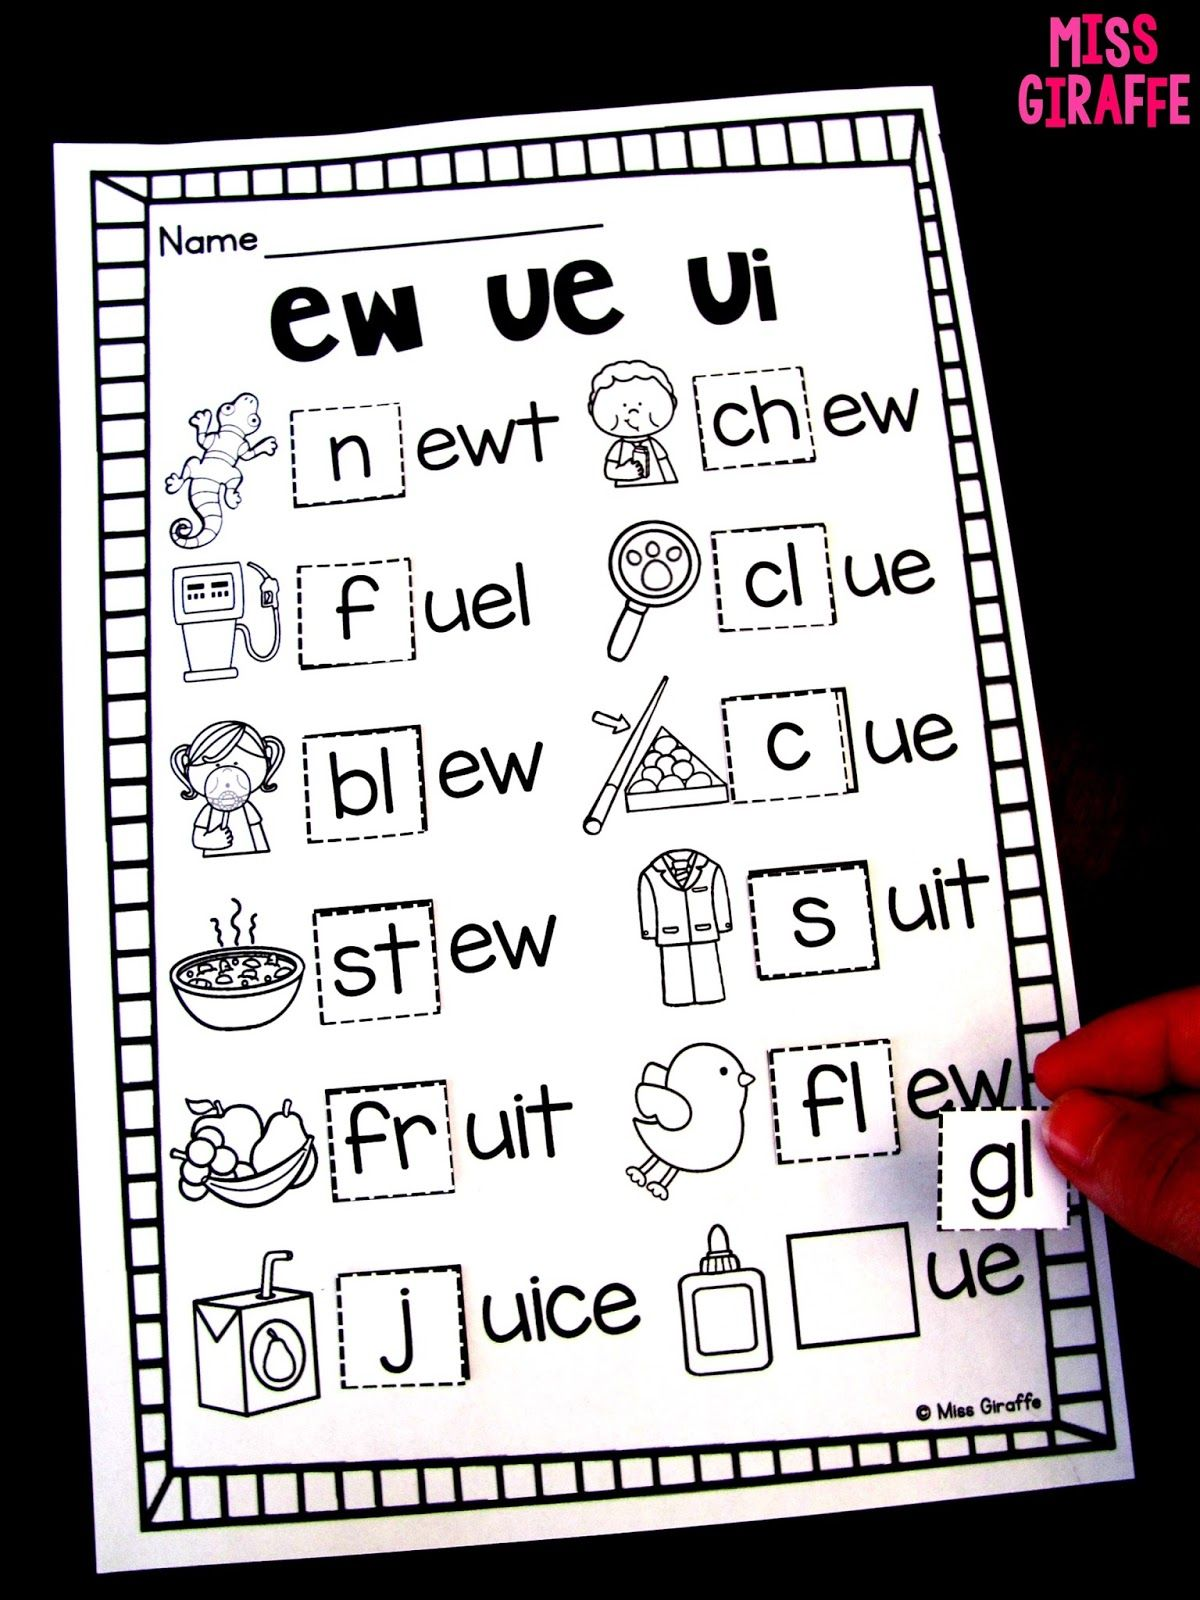 EW UE UI is a difficult phonics sound to teach so I wanted